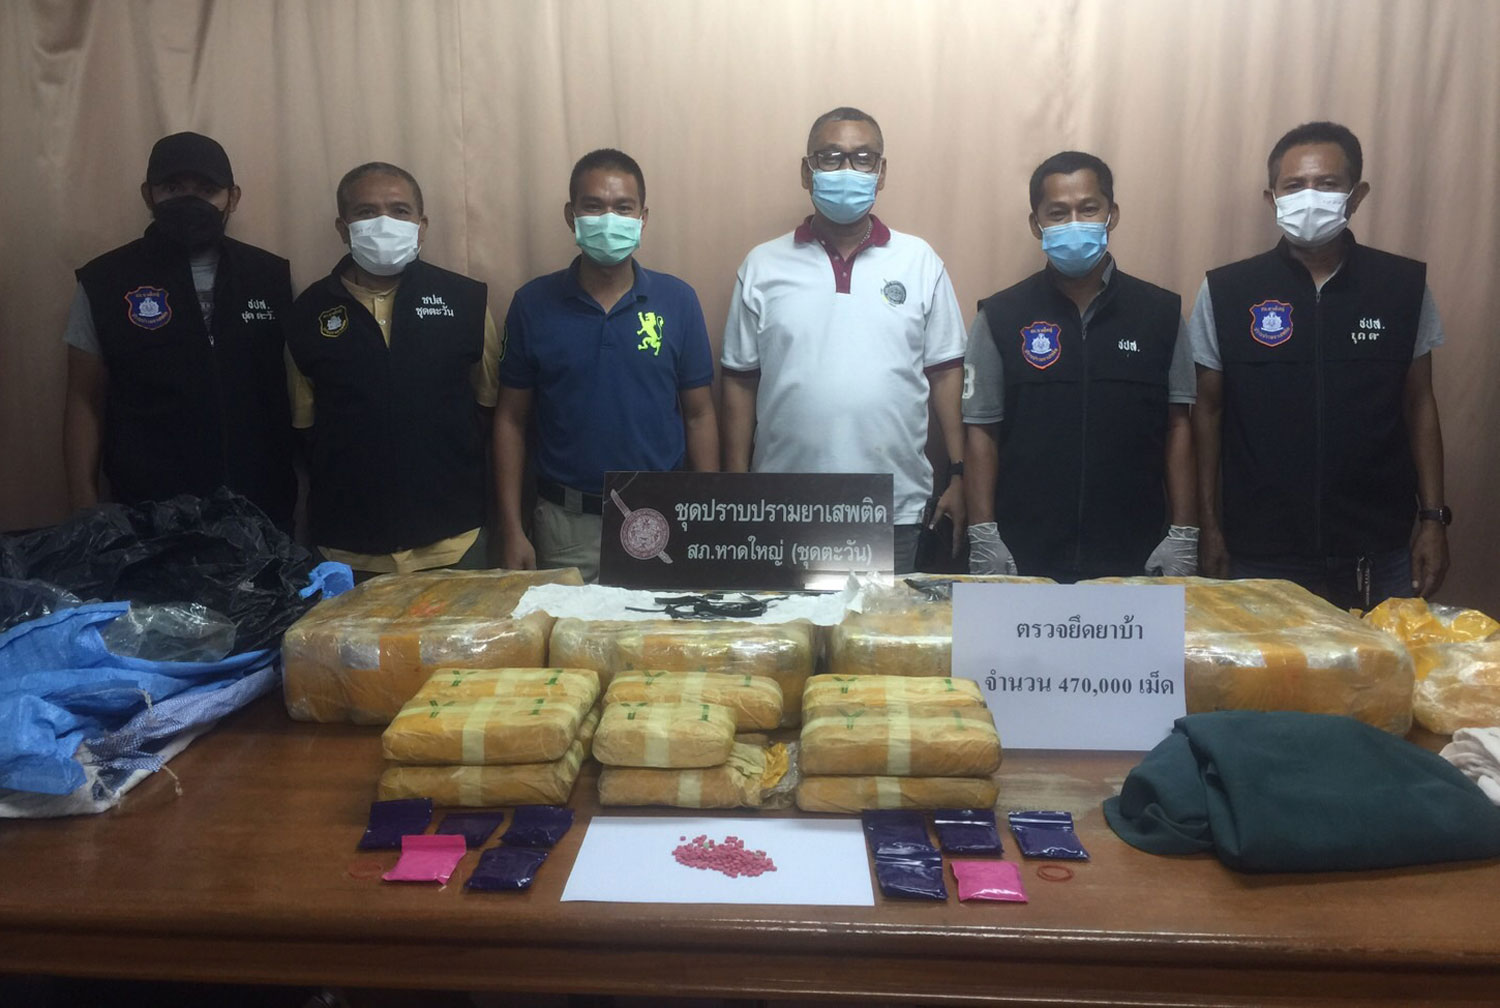 Police display packages containing 470,000 meth pills found in three sacks on the side of a road in Hat Yai, Songkhla, on Wednesday night. (Photo: Assawin Pakkawan)